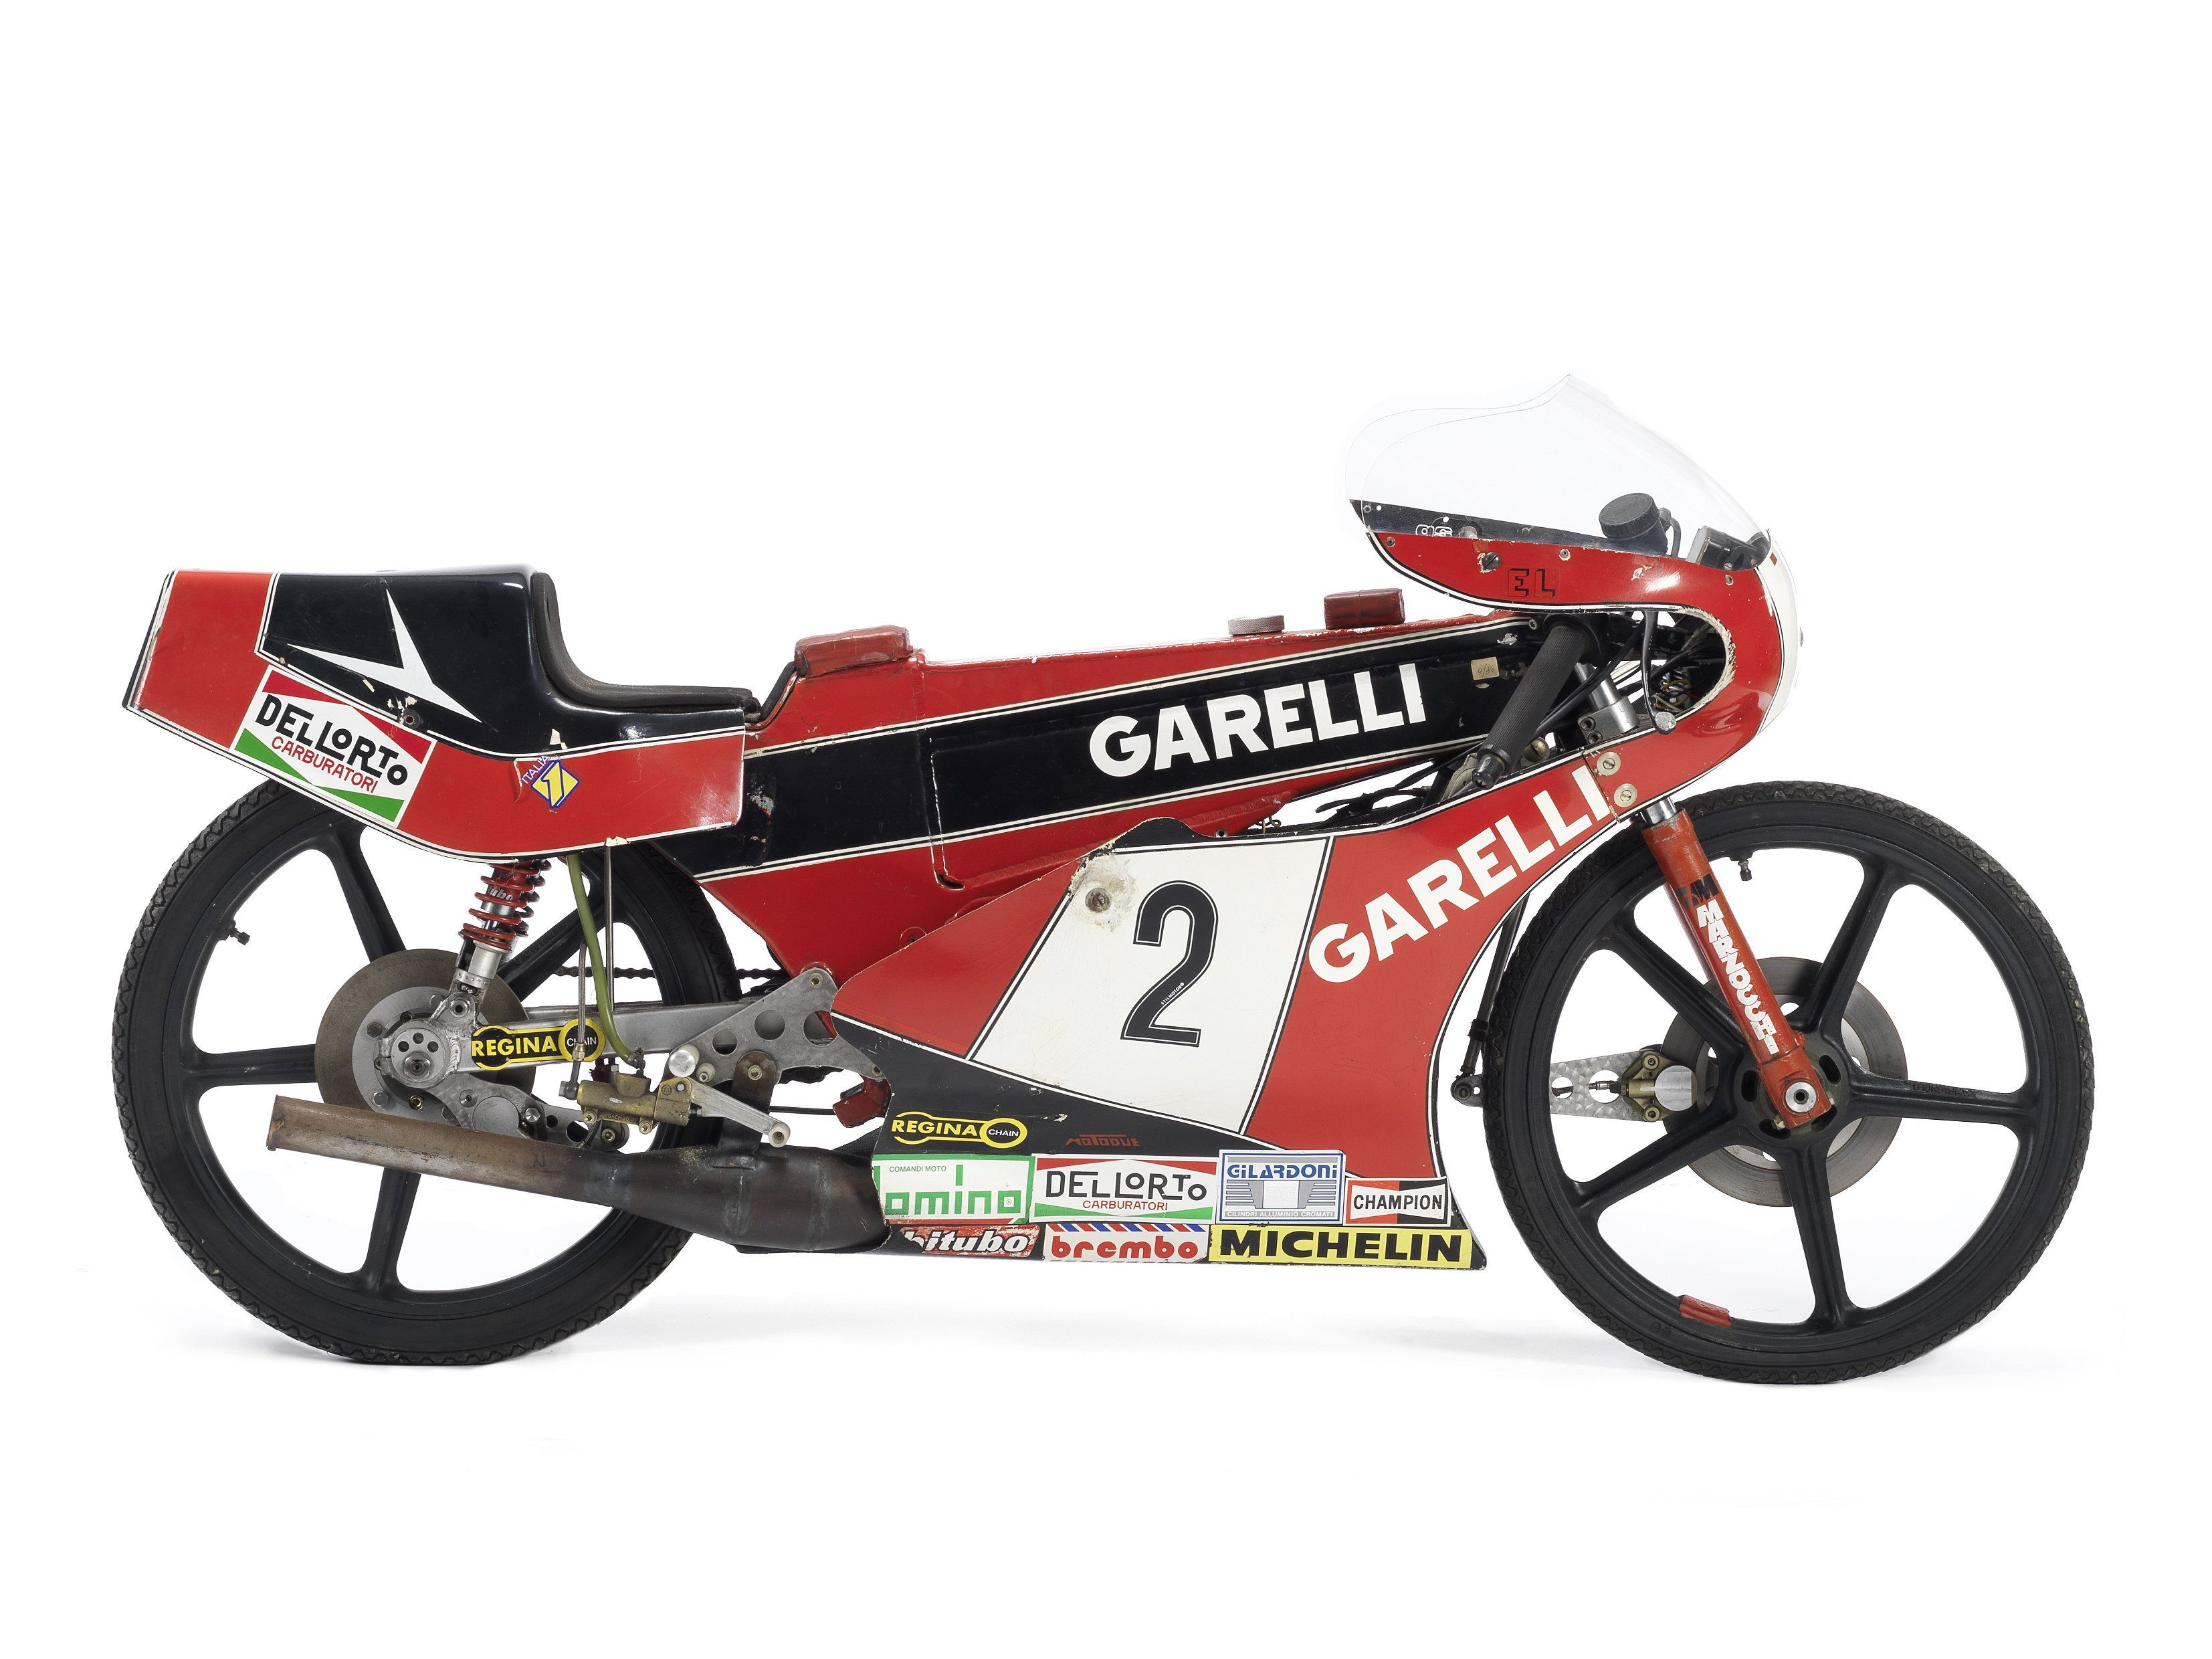 garelli 50 cc motos pinterest racing motorcycles. Black Bedroom Furniture Sets. Home Design Ideas